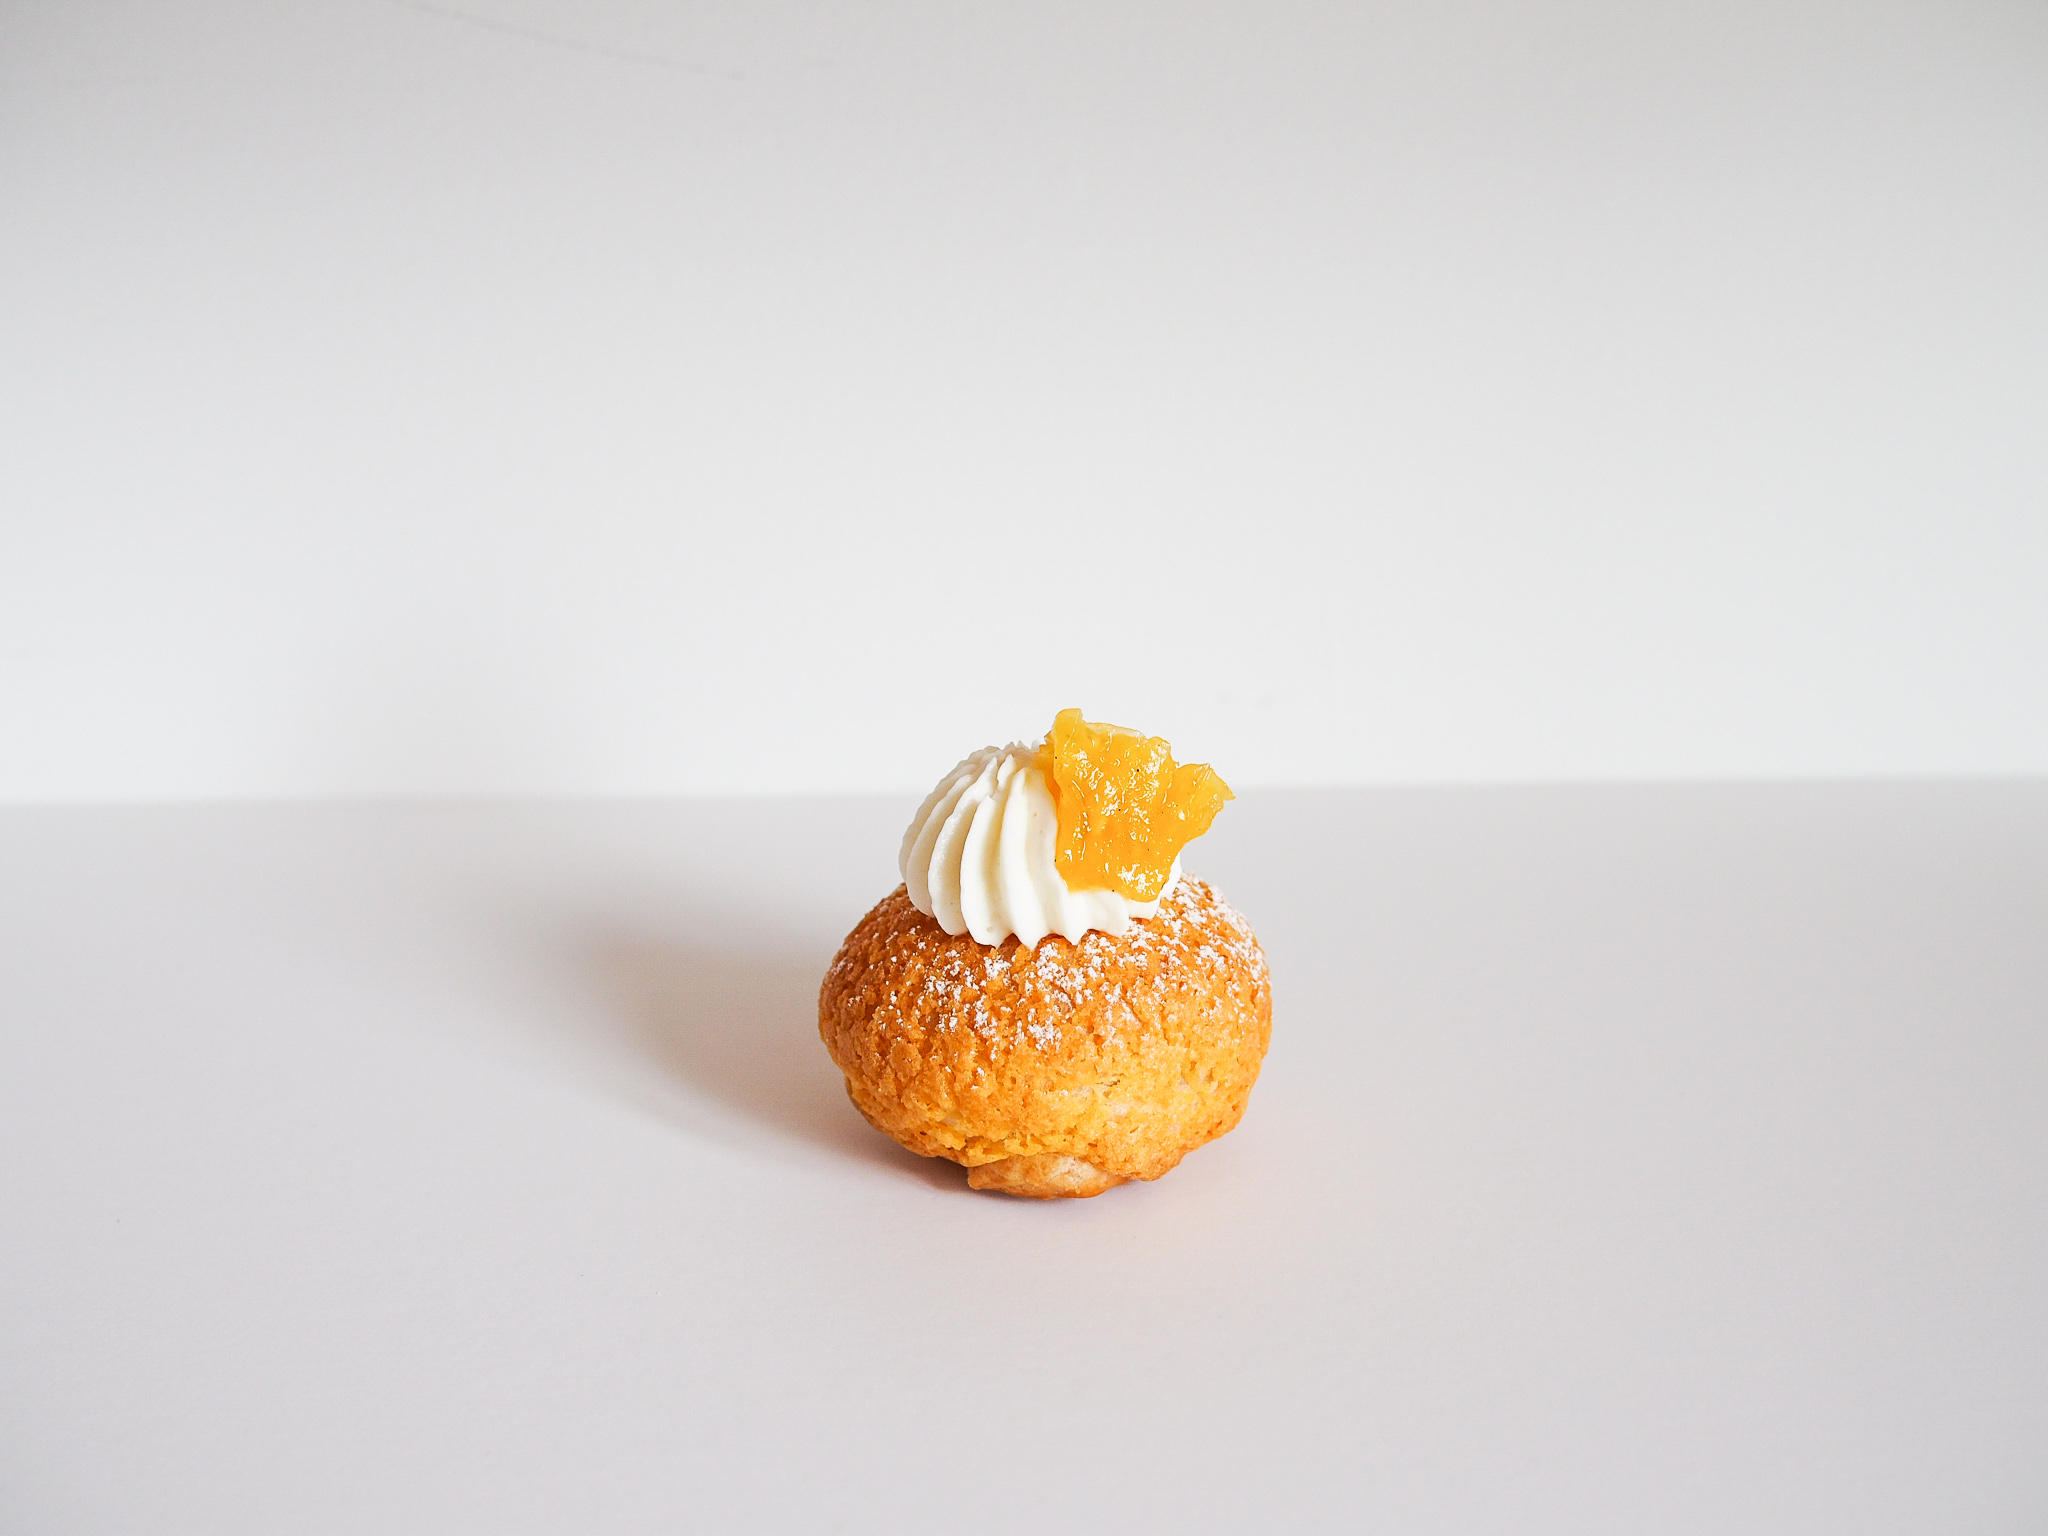 Pineapple Cake - tropical + lightfilled with a whipped white chocolate infused with pineapple, filled with pineapple jam, topped with powdered sugar and topped with a candied pineapple